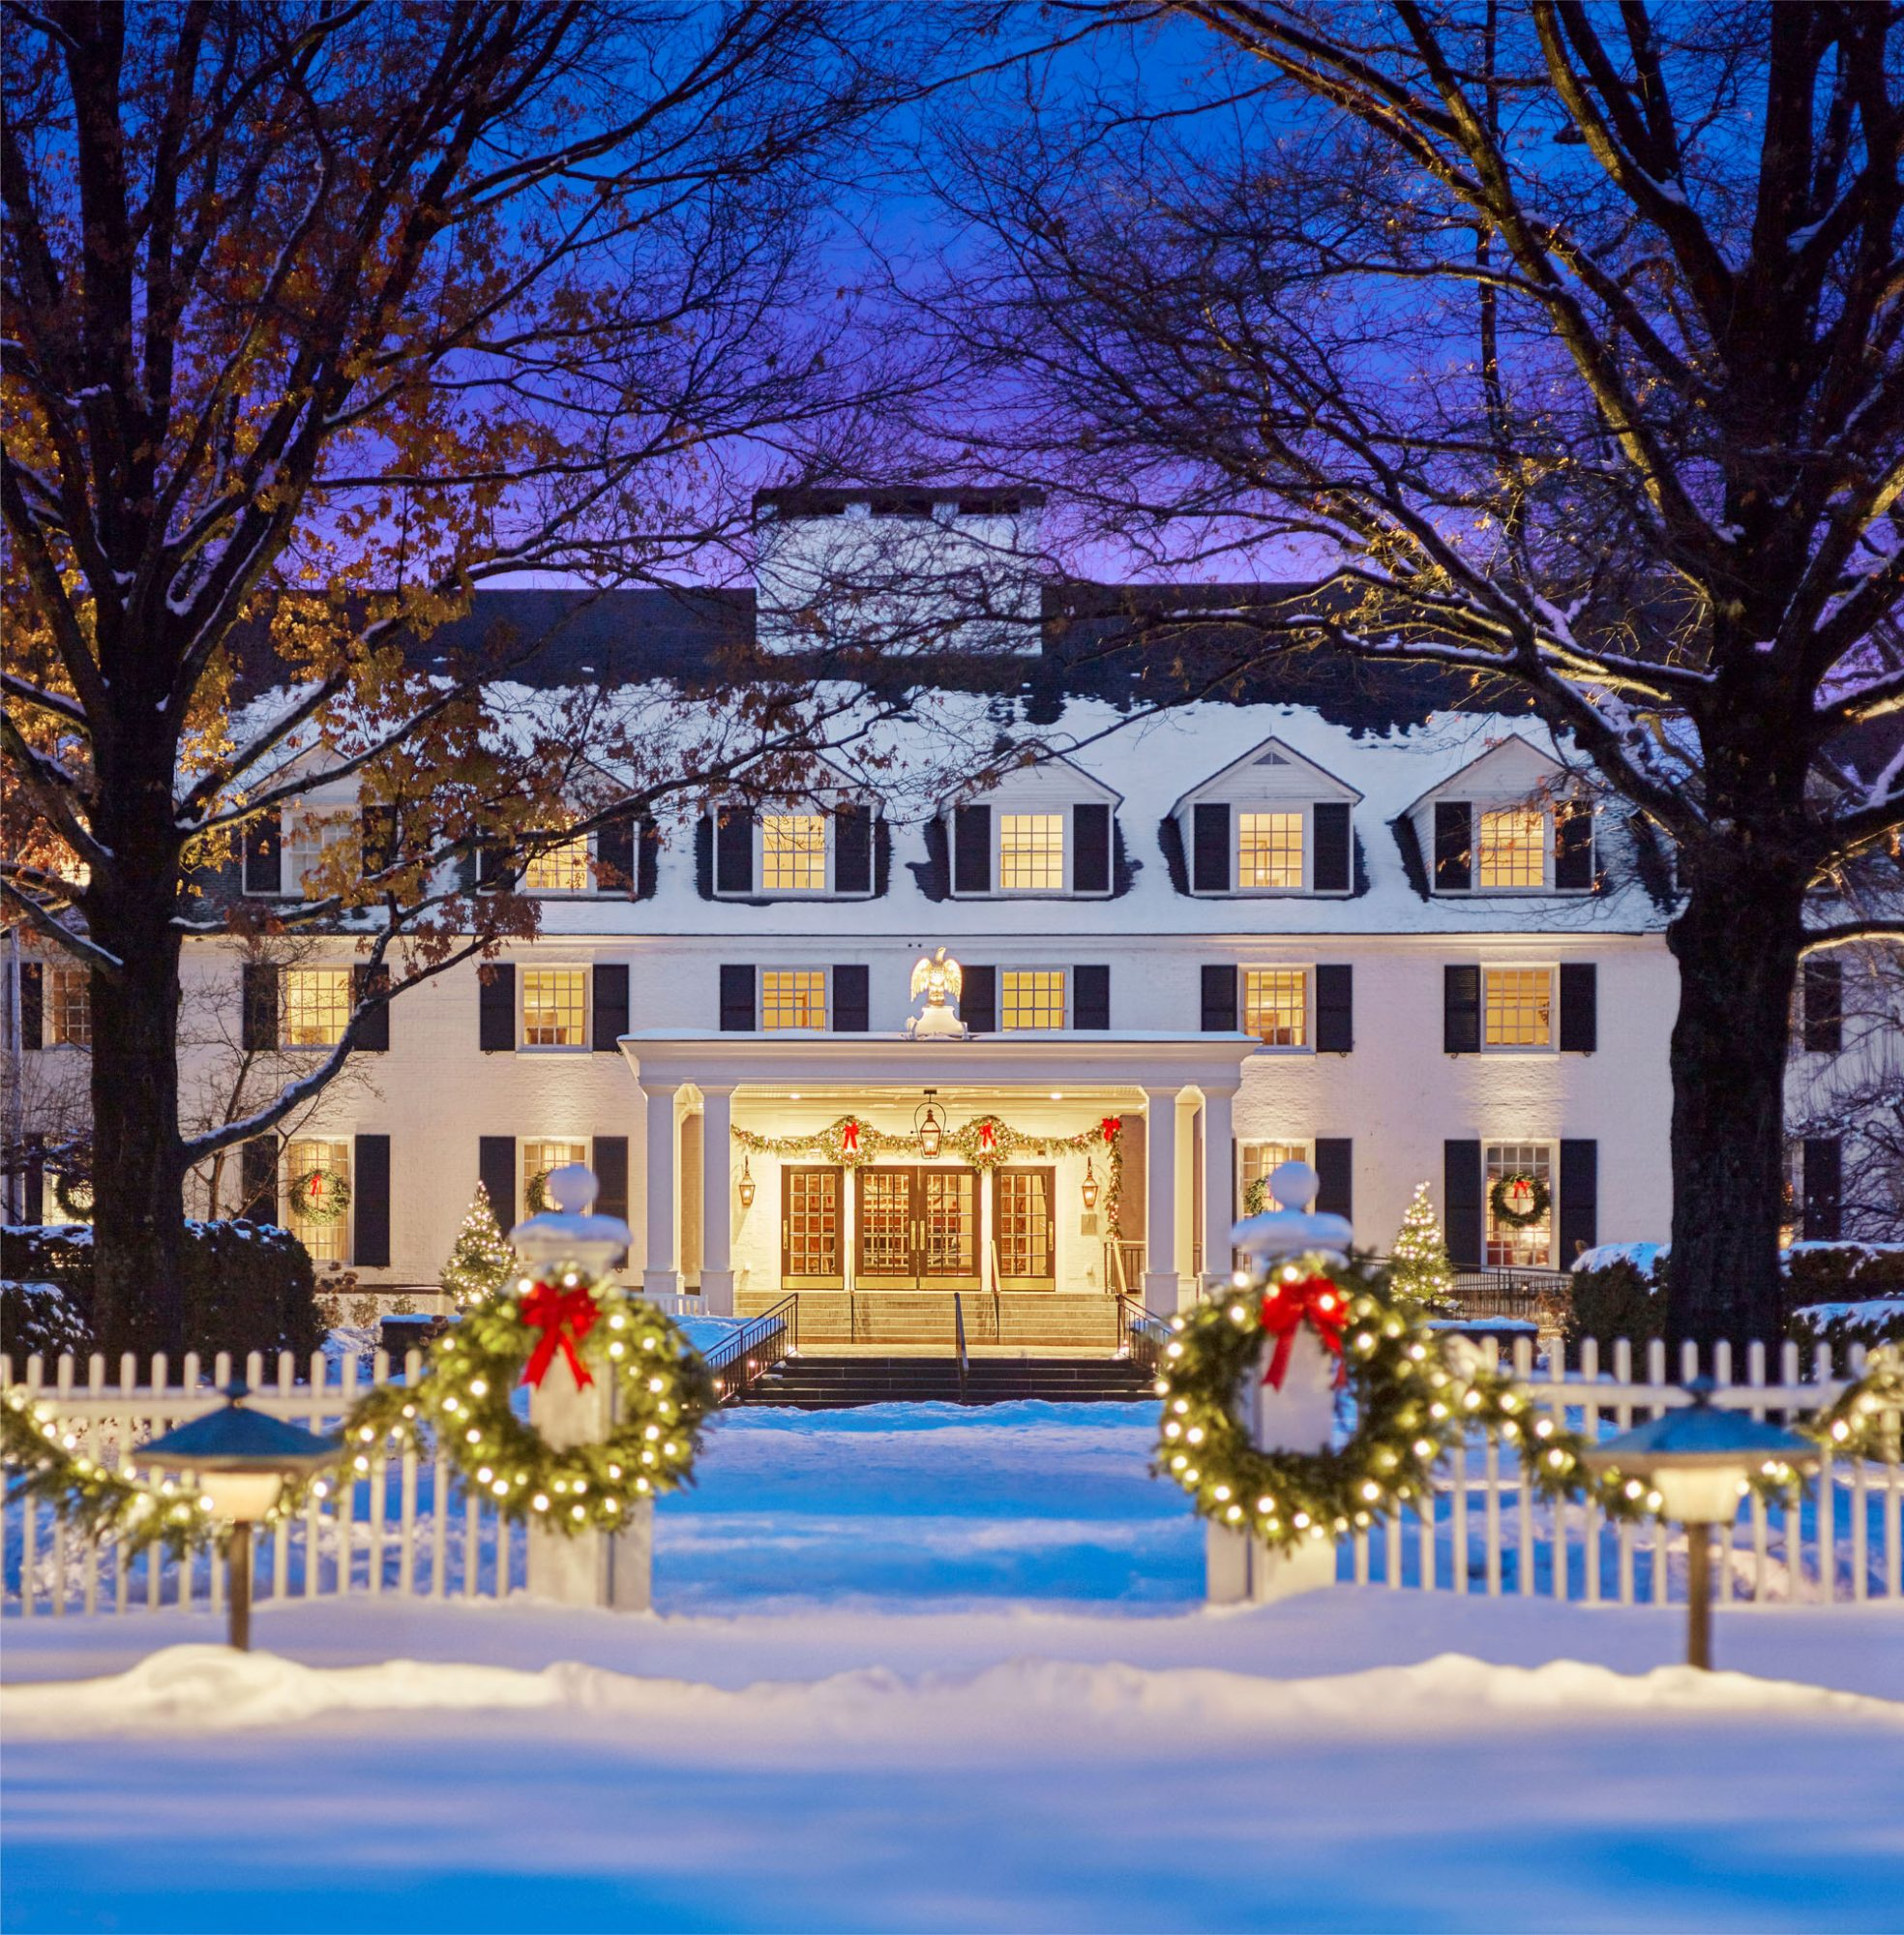 Woodstock Inn & Resort with holiday decorations